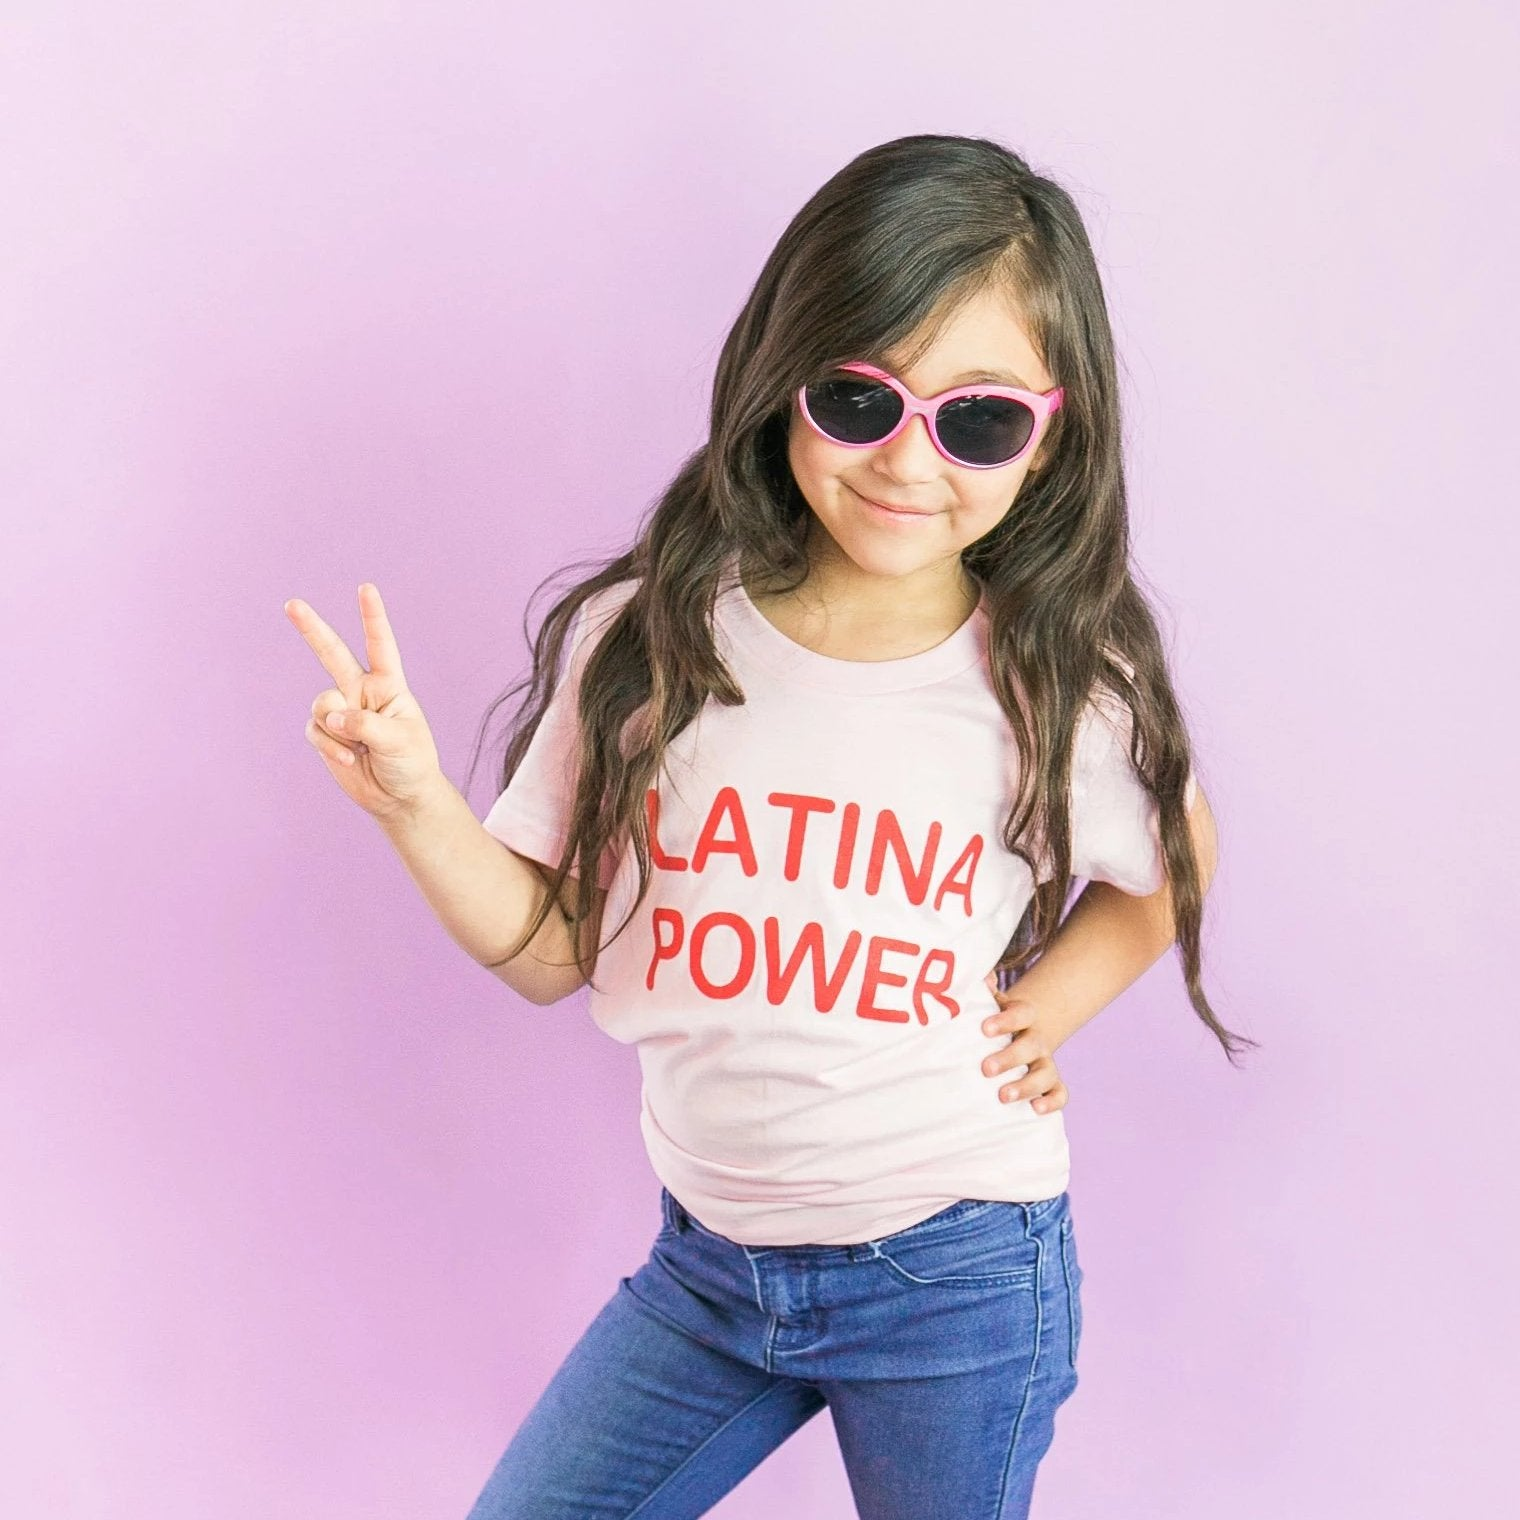 Latina Power Tee